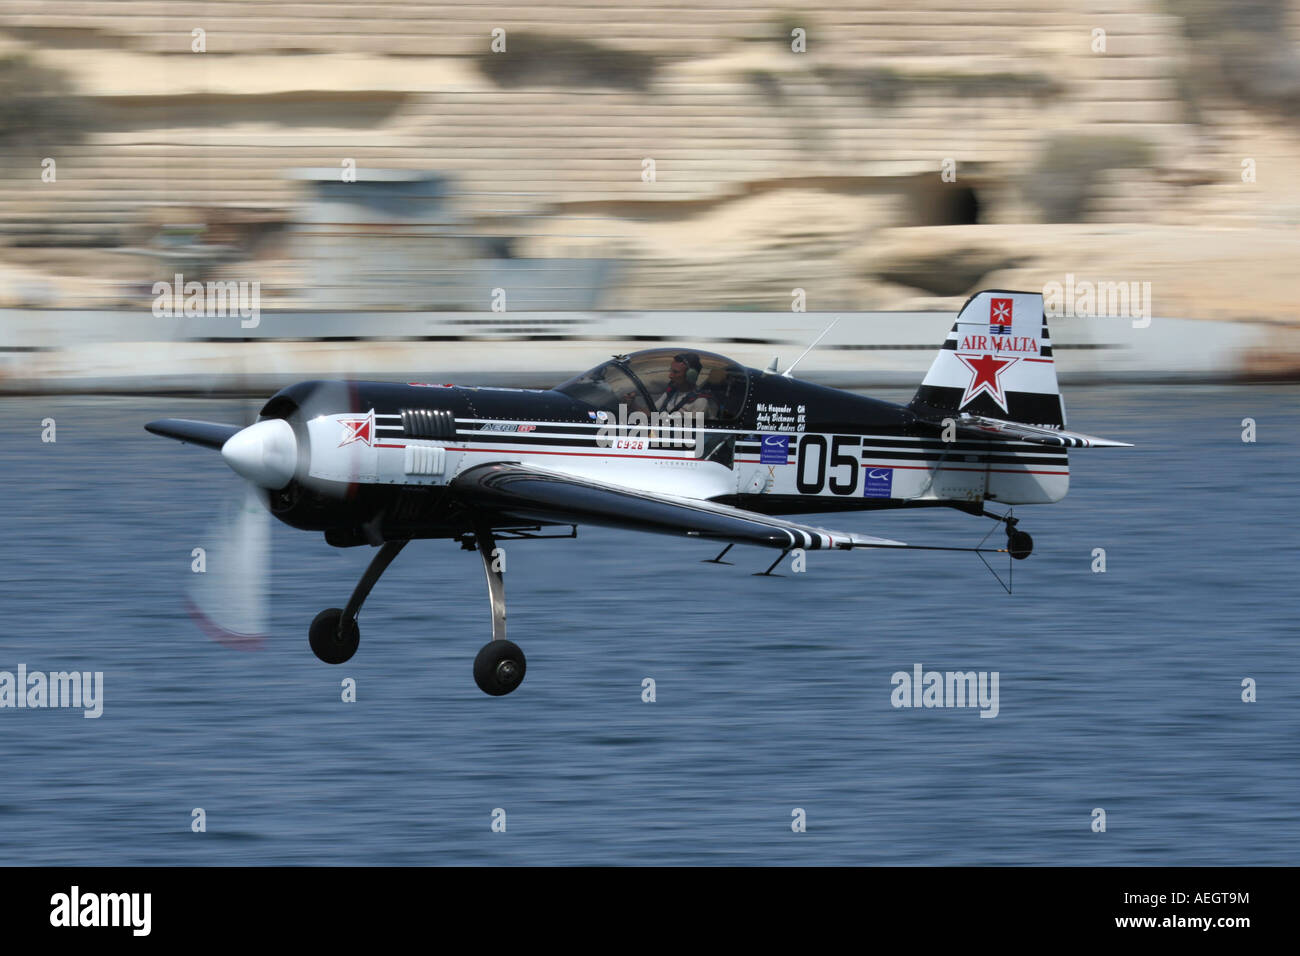 Sukhoi Su-26 single engine aerobatic display aircraft or stunt plane flying fast and low. Slow shutter speed used Stock Photo